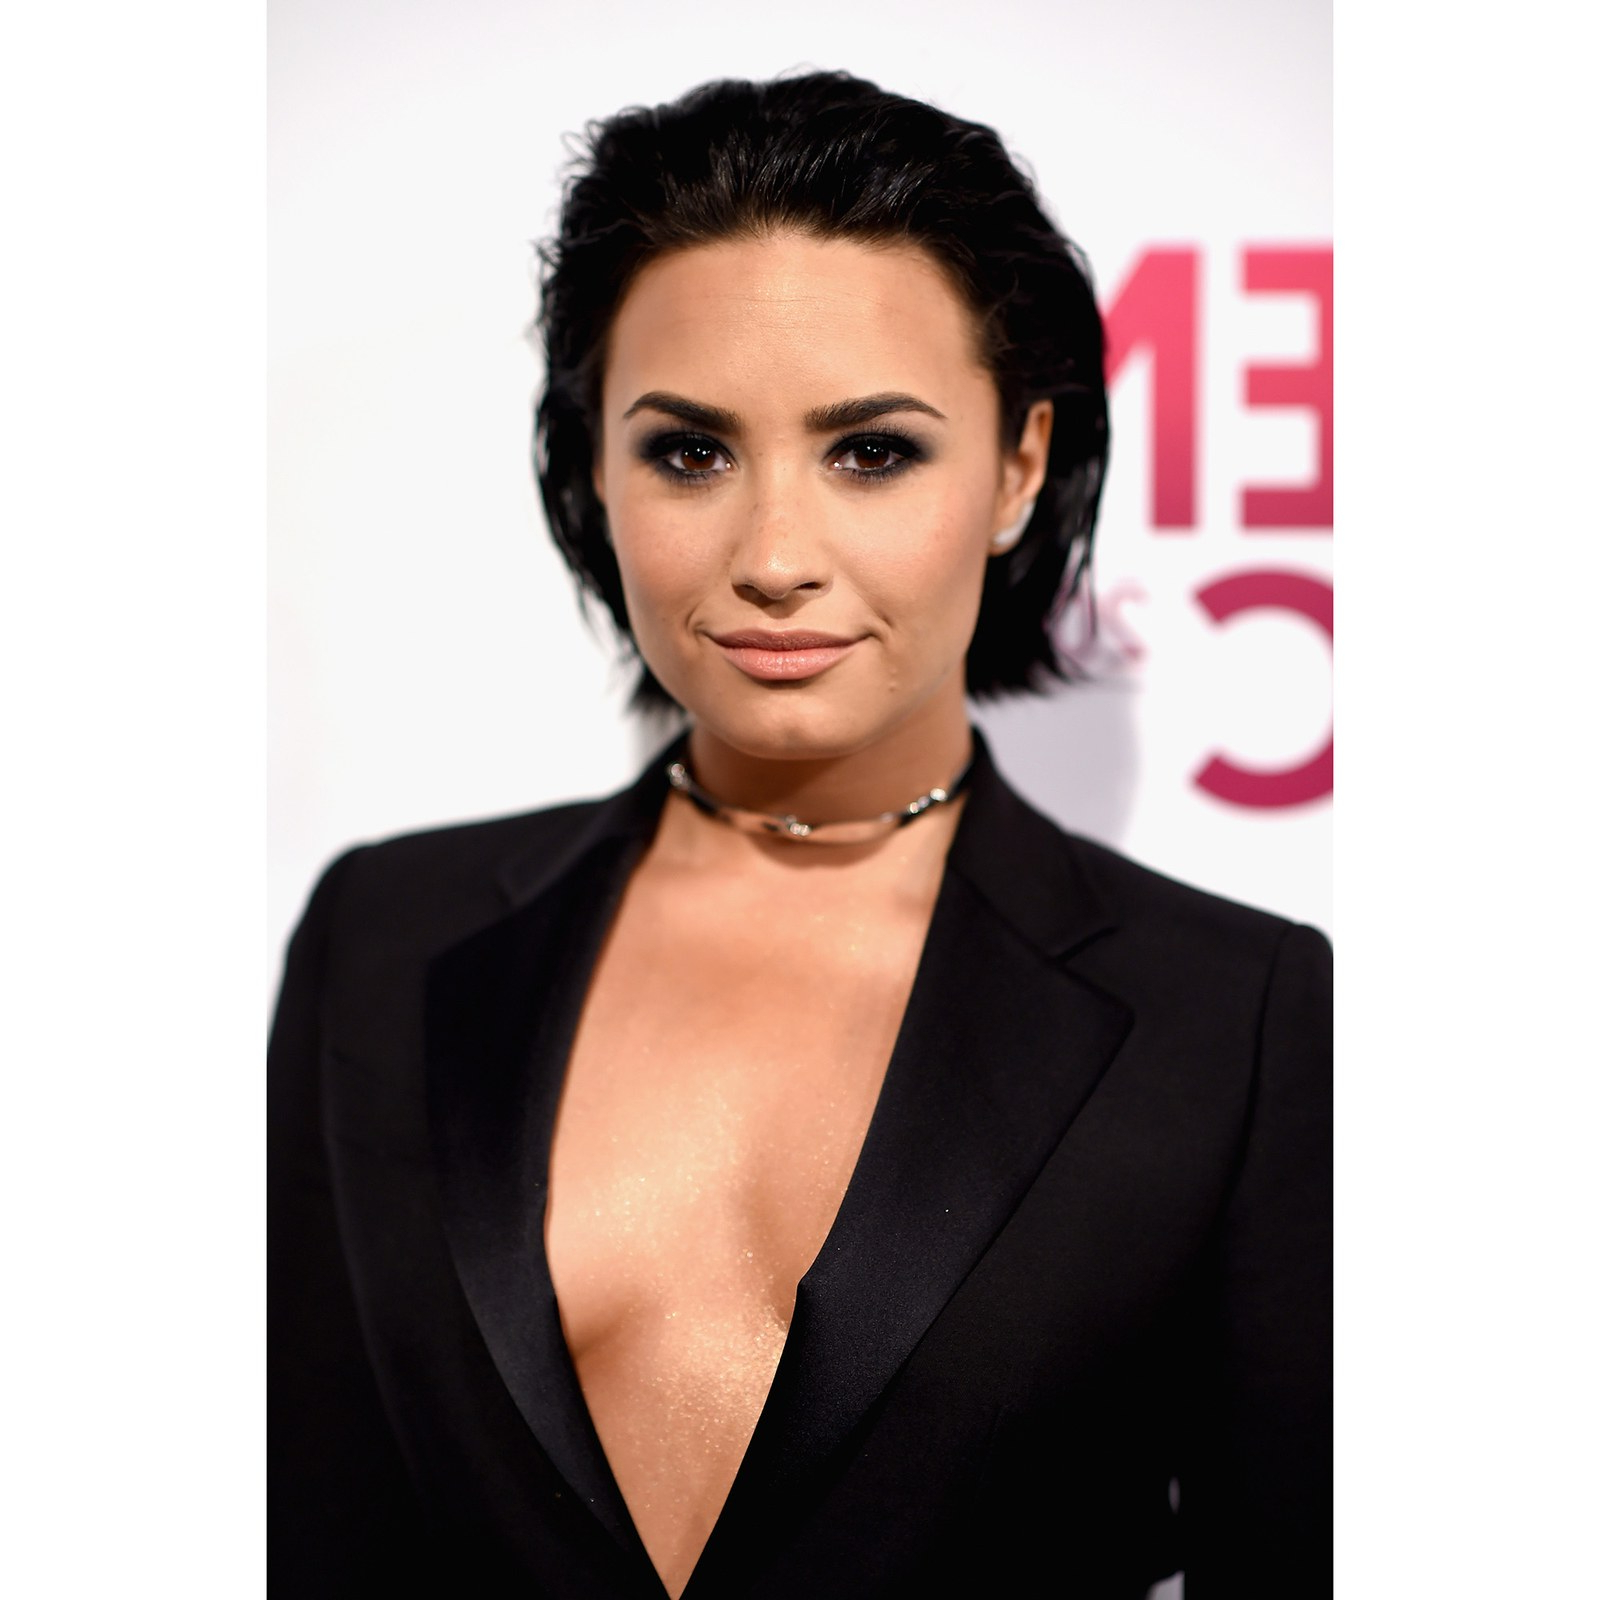 17 Short Haircuts And Hairstyles For Women 2017 – Allure Throughout Demi Lovato Short Haircuts (View 11 of 25)